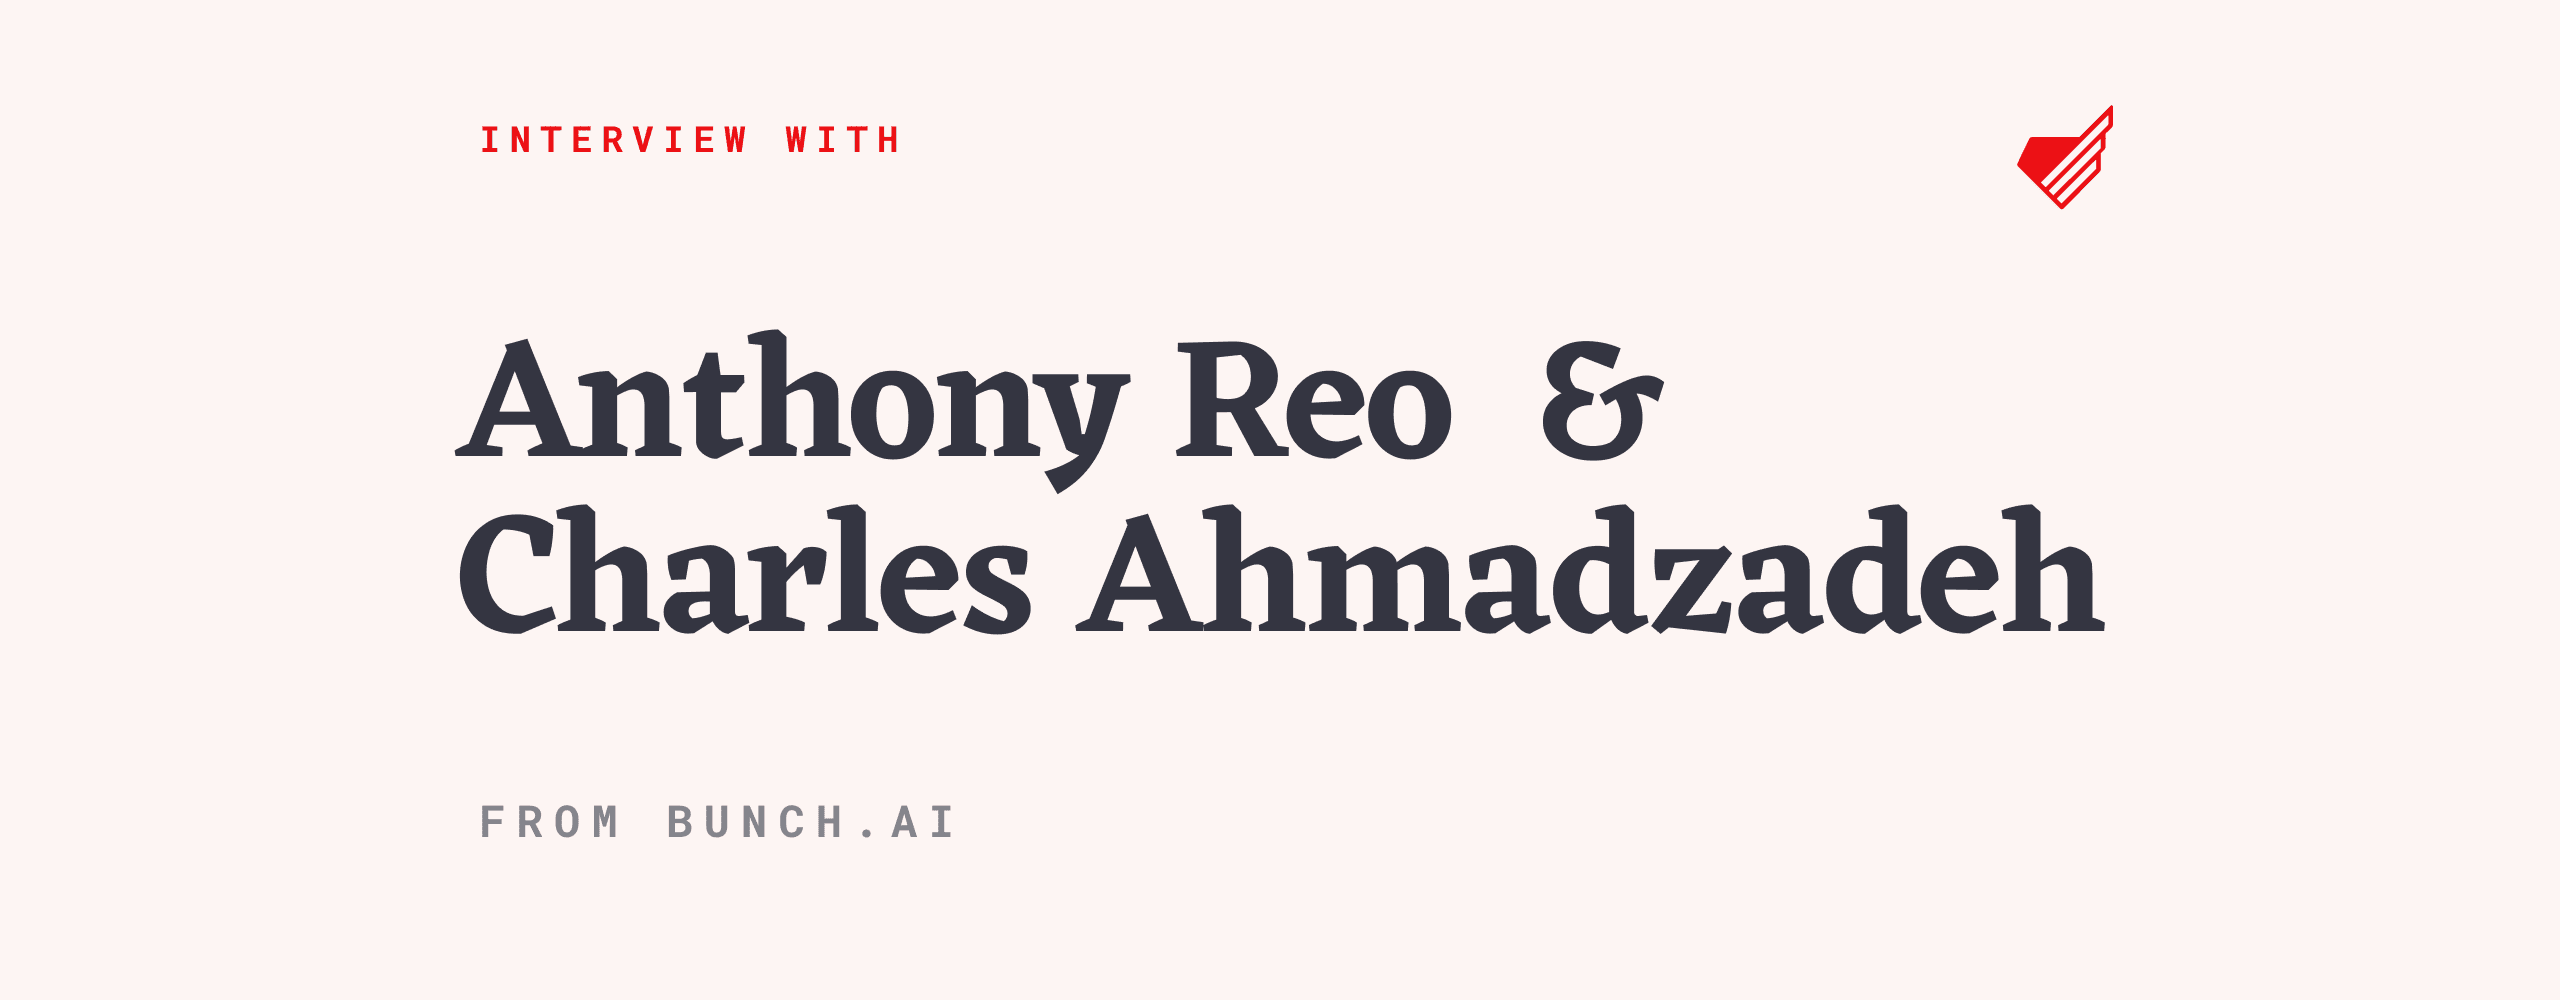 anthony-reo-charles-ahmadzadeh-interview-hs (1)